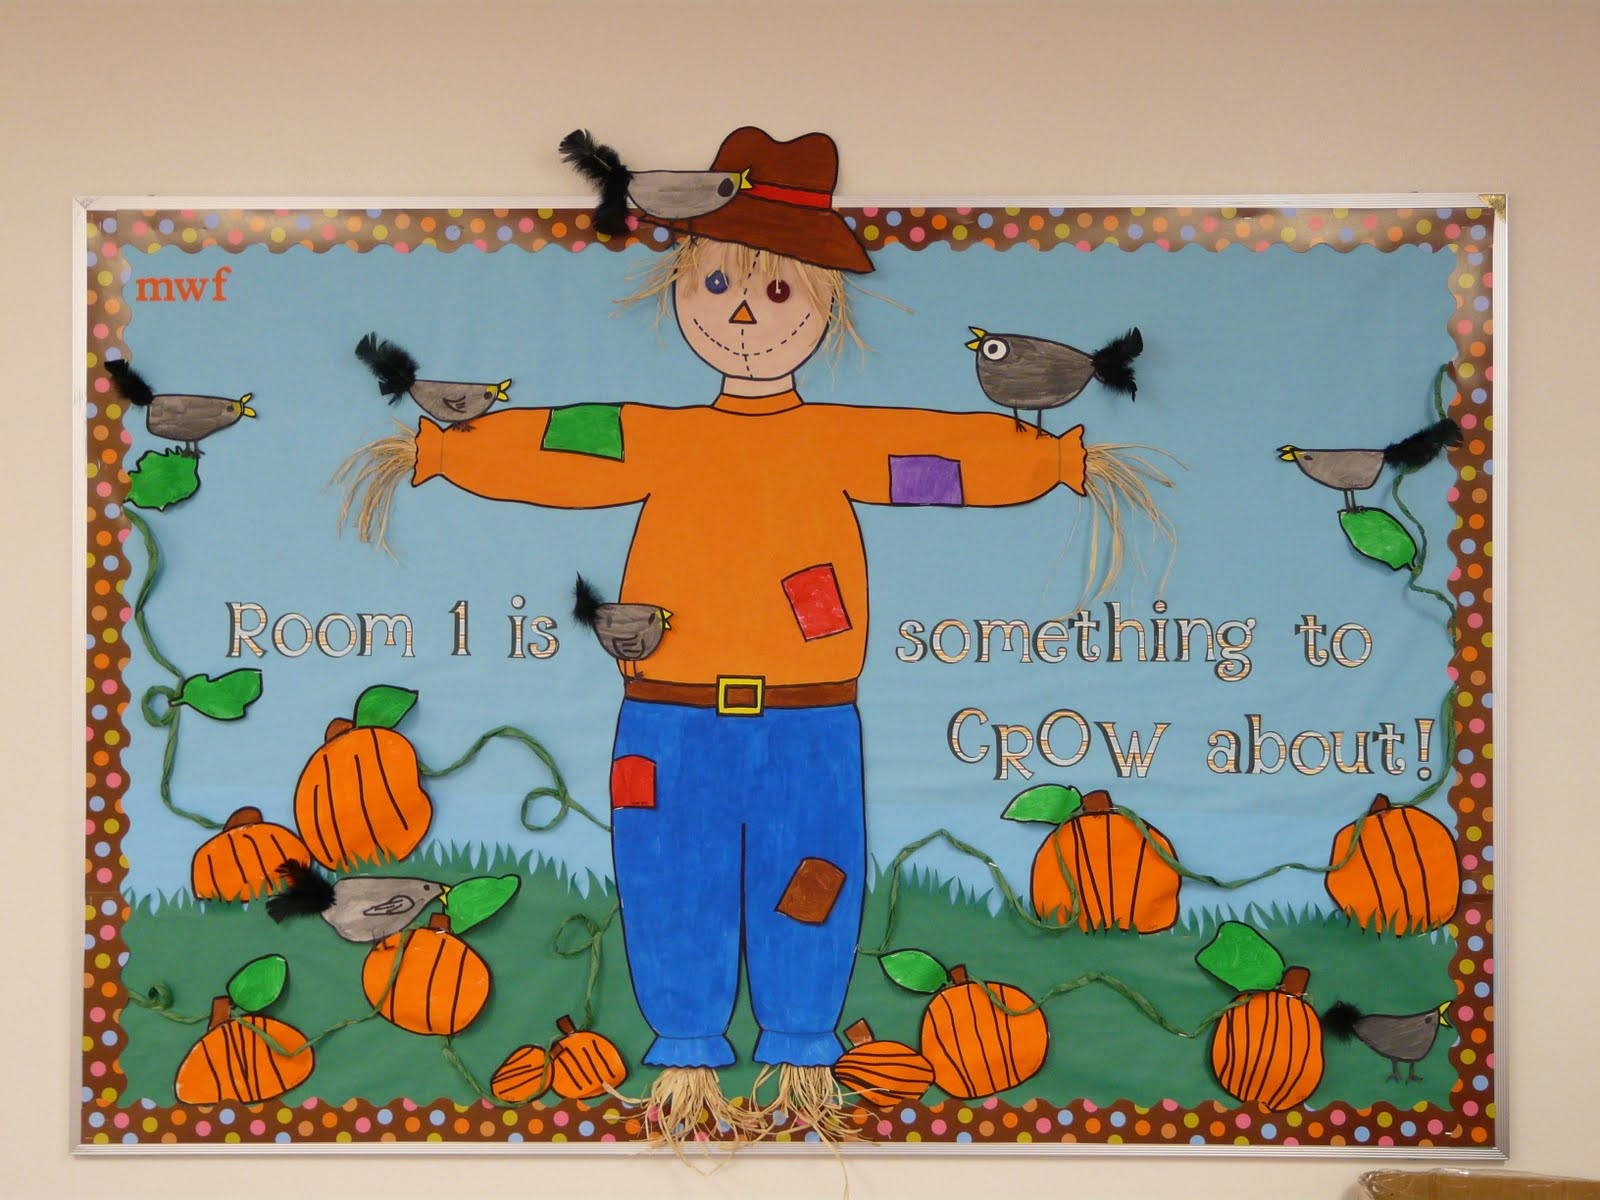 October Bulletin Board Ideas Preschool http://bulletinboardideas.blogspot.com/2010_10_01_archive.html